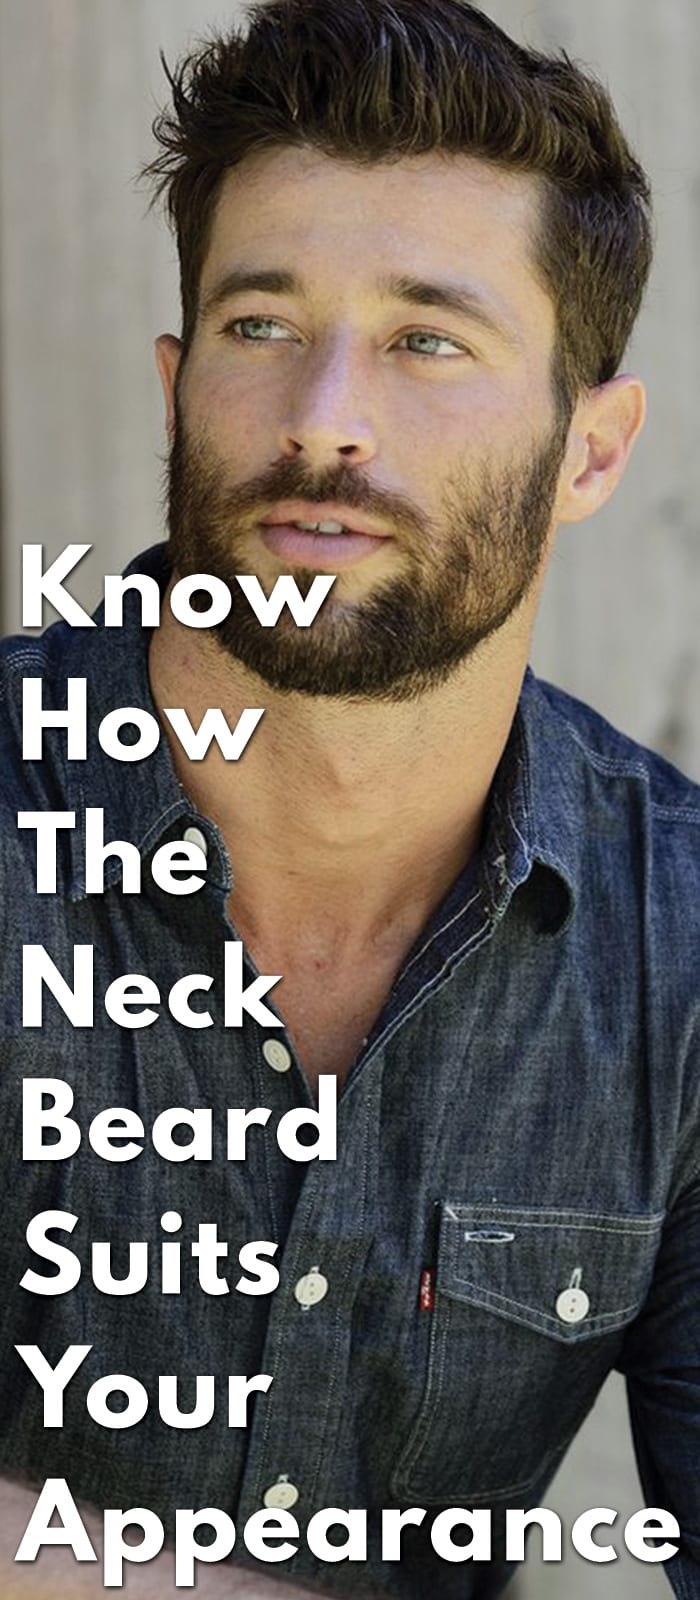 Know-How-The-Neck-Beard-Suits-Your-Appearance.